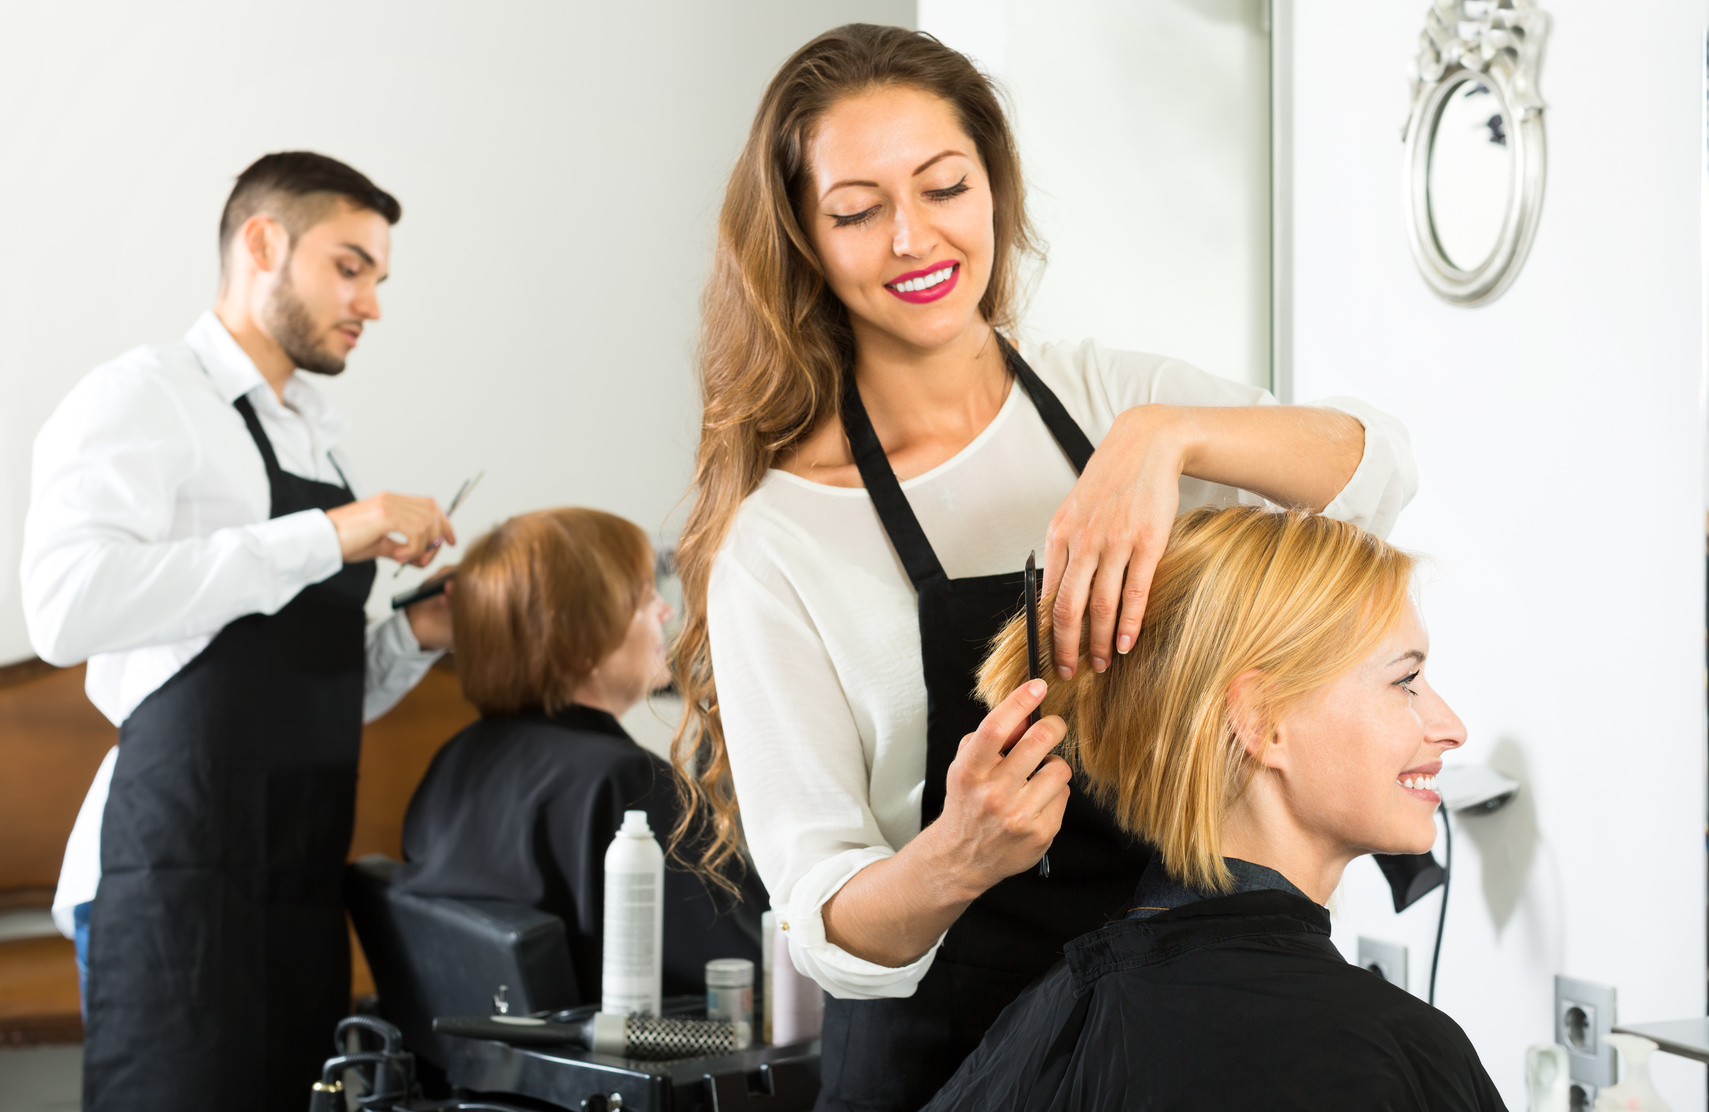 Smiling client sitting in a hair salon while hairdresser is combing her hair. Focus on client